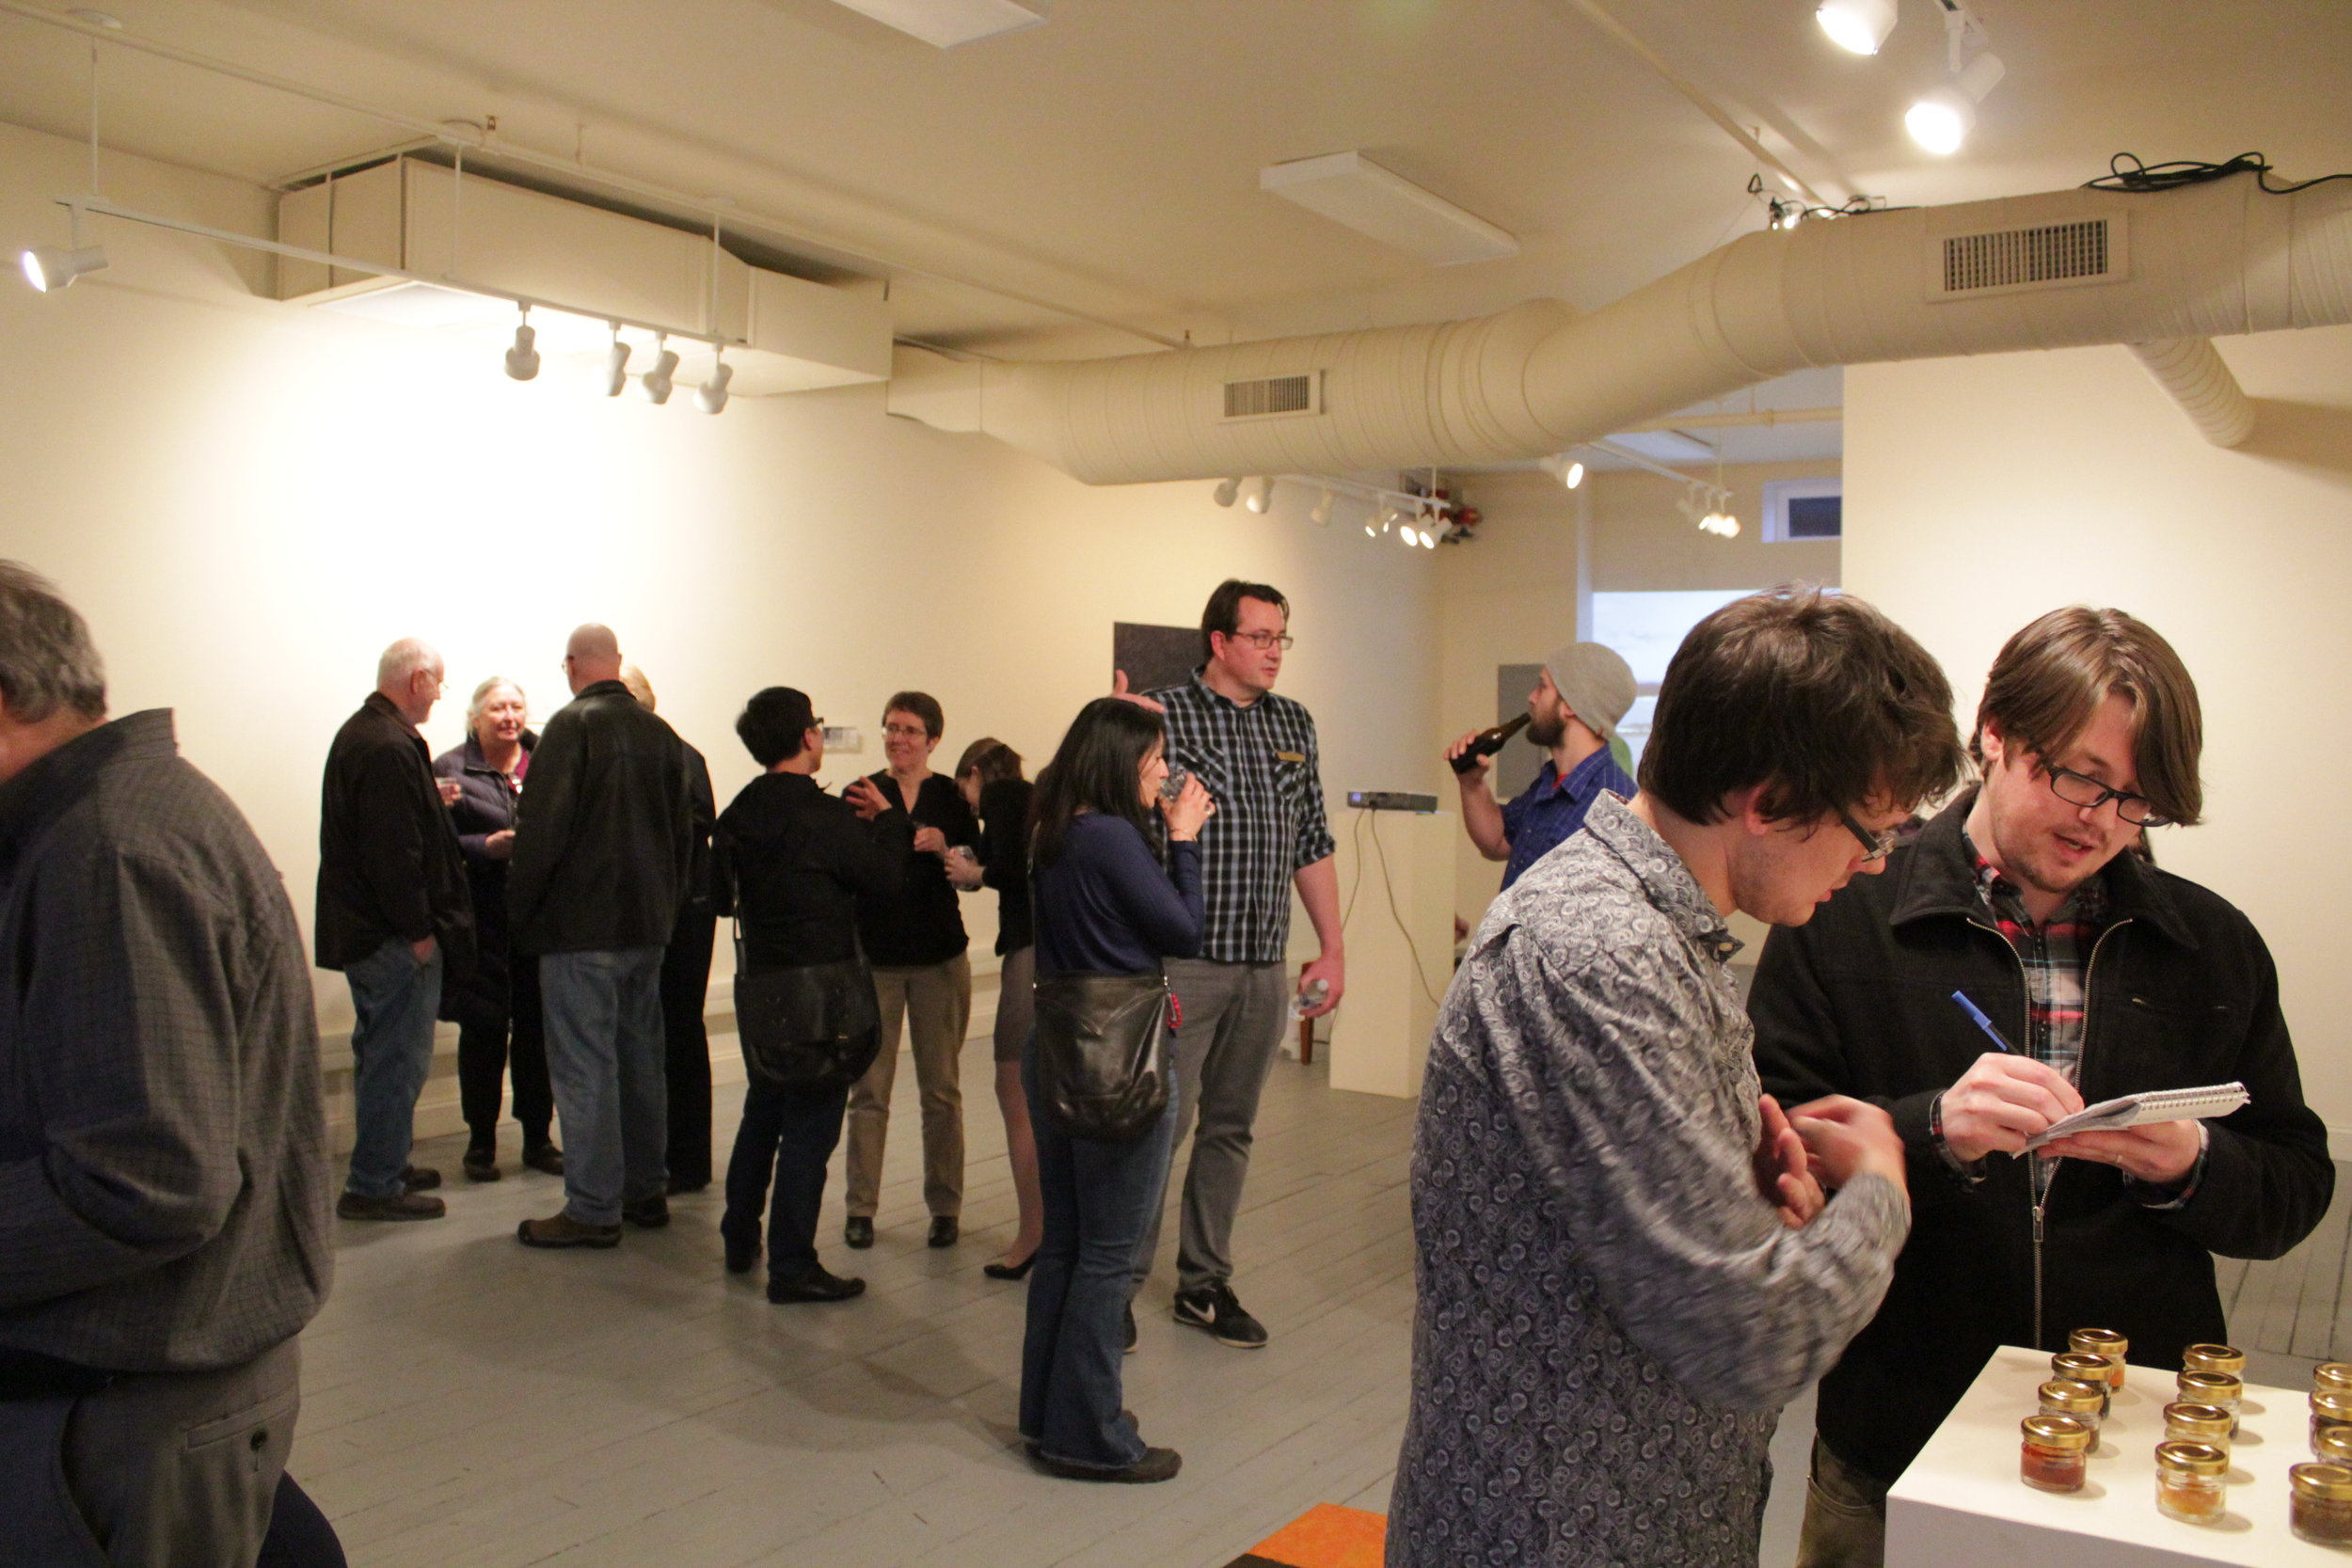 Opening night of 'COLONIZE' at 3rd on 3rd Gallery, Jamestown, New York (2014). Photo: David Cotton